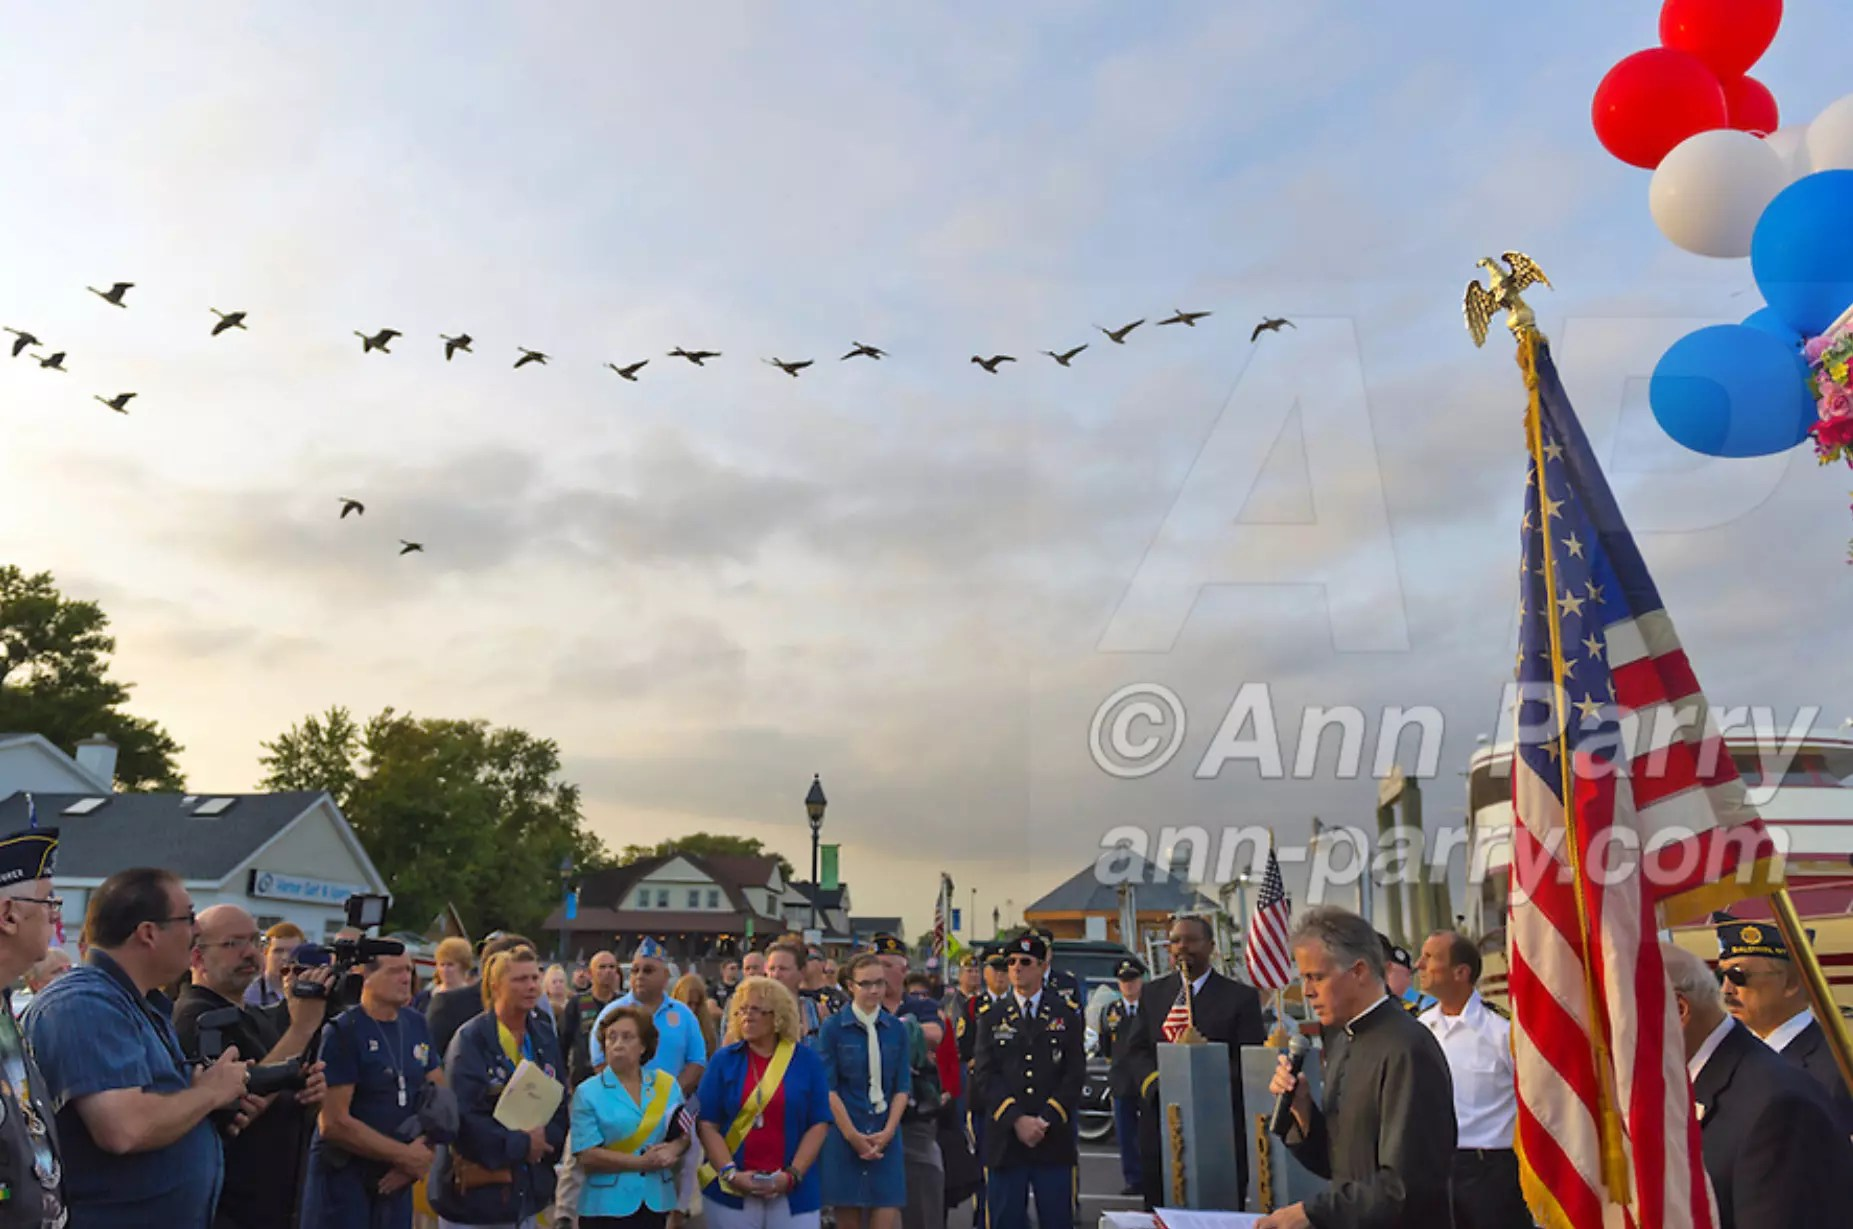 Freeport, NY, USA. Sept. 10, 2014. A flock of birds flies overhead as pastor speaks at a dockside remembrance ceremony in honor of victims of the terrorist attacks of September 11 2001, at the boat Miss Freeport V, on Freeport's Nautical Mile. Further ceremonies were held on board the vessel, which sailed from the Woodcleft Canal on the South Shore of Long Island, on the eve of the 13th Anniversary of the 9/11 attacks.